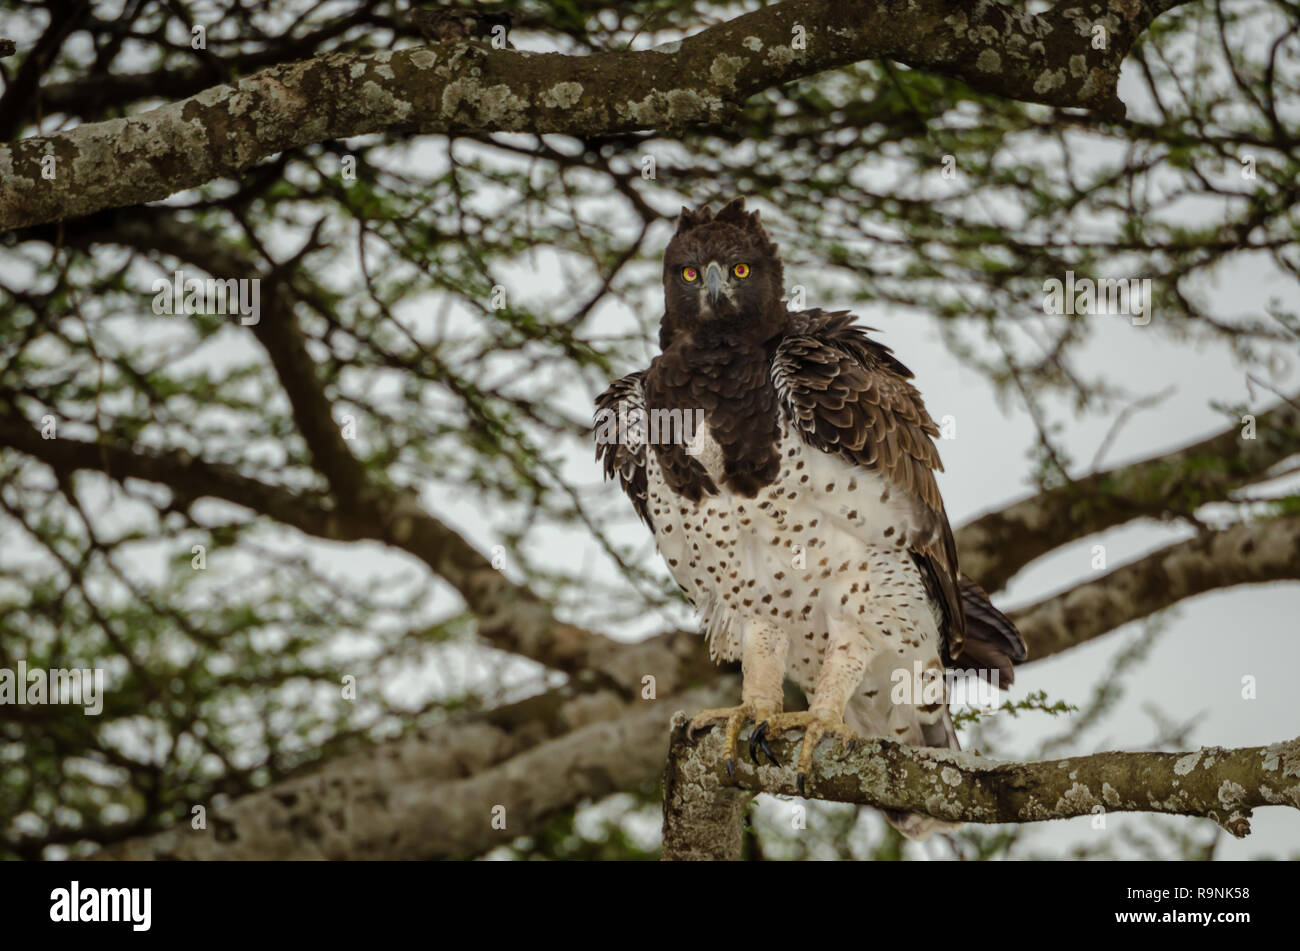 Martial eagle (Polemaetus bellicosus) in Tanzania, Africa is considered Vulnerable. - Stock Image